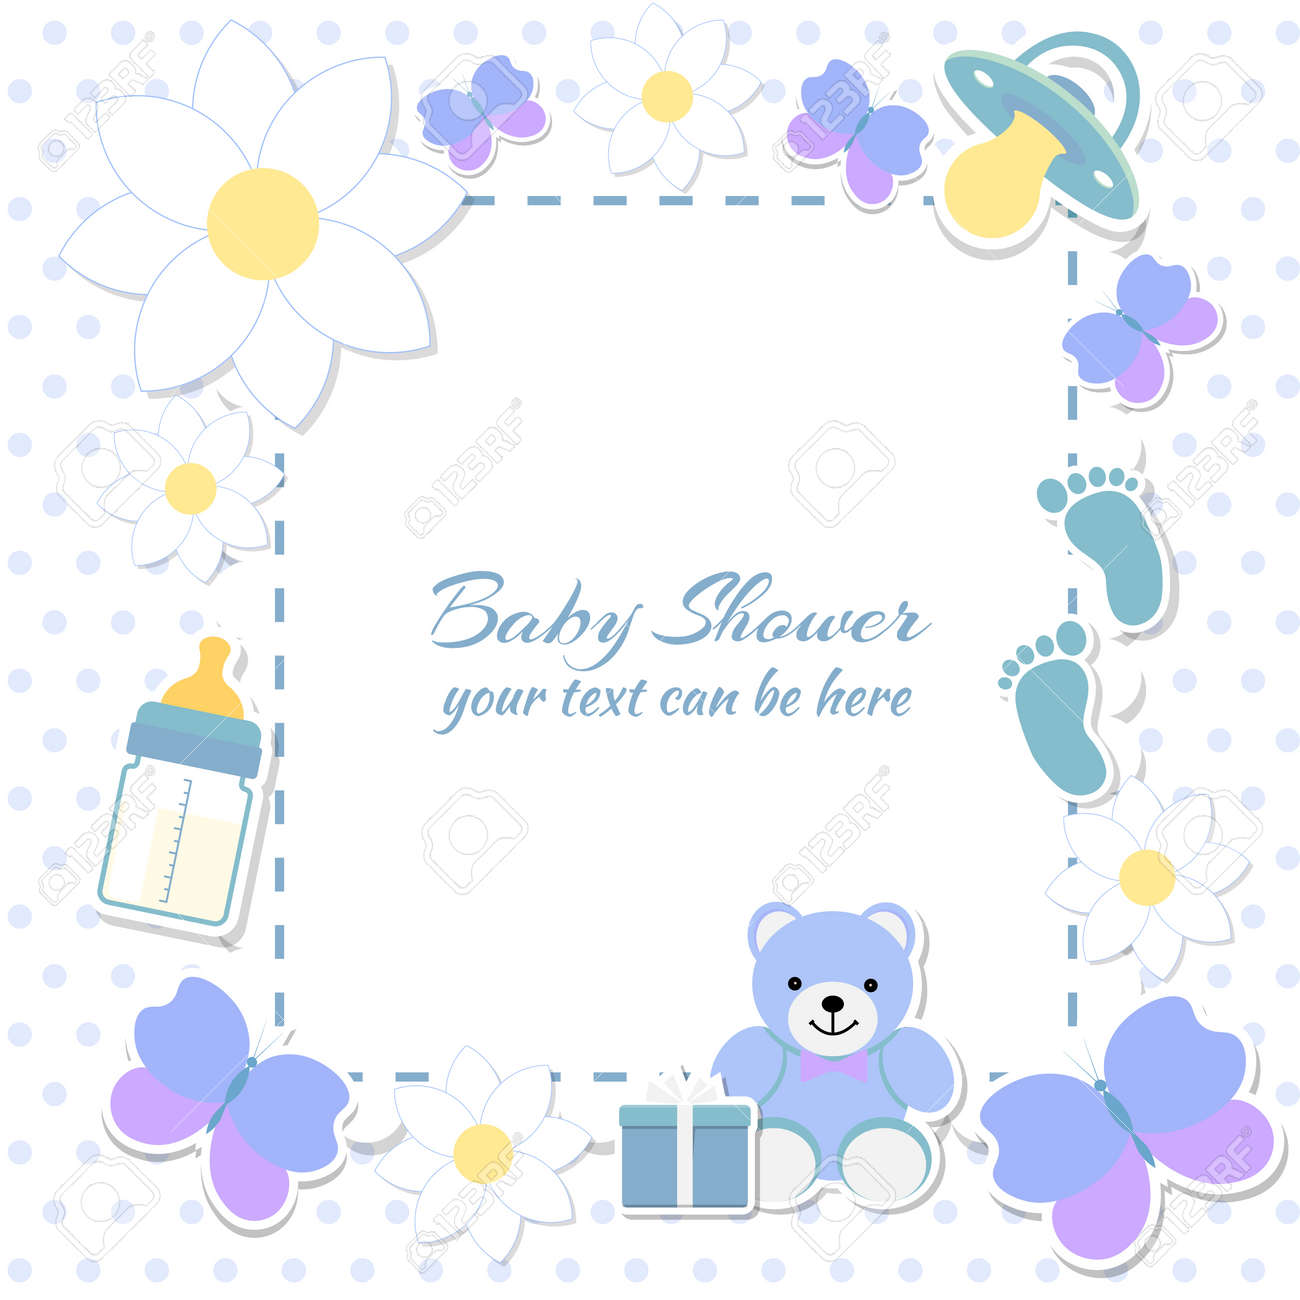 Baby shower boy invitation card place for text greeting cards baby shower boy invitation card place for text greeting cards vector illustration kristyandbryce Image collections